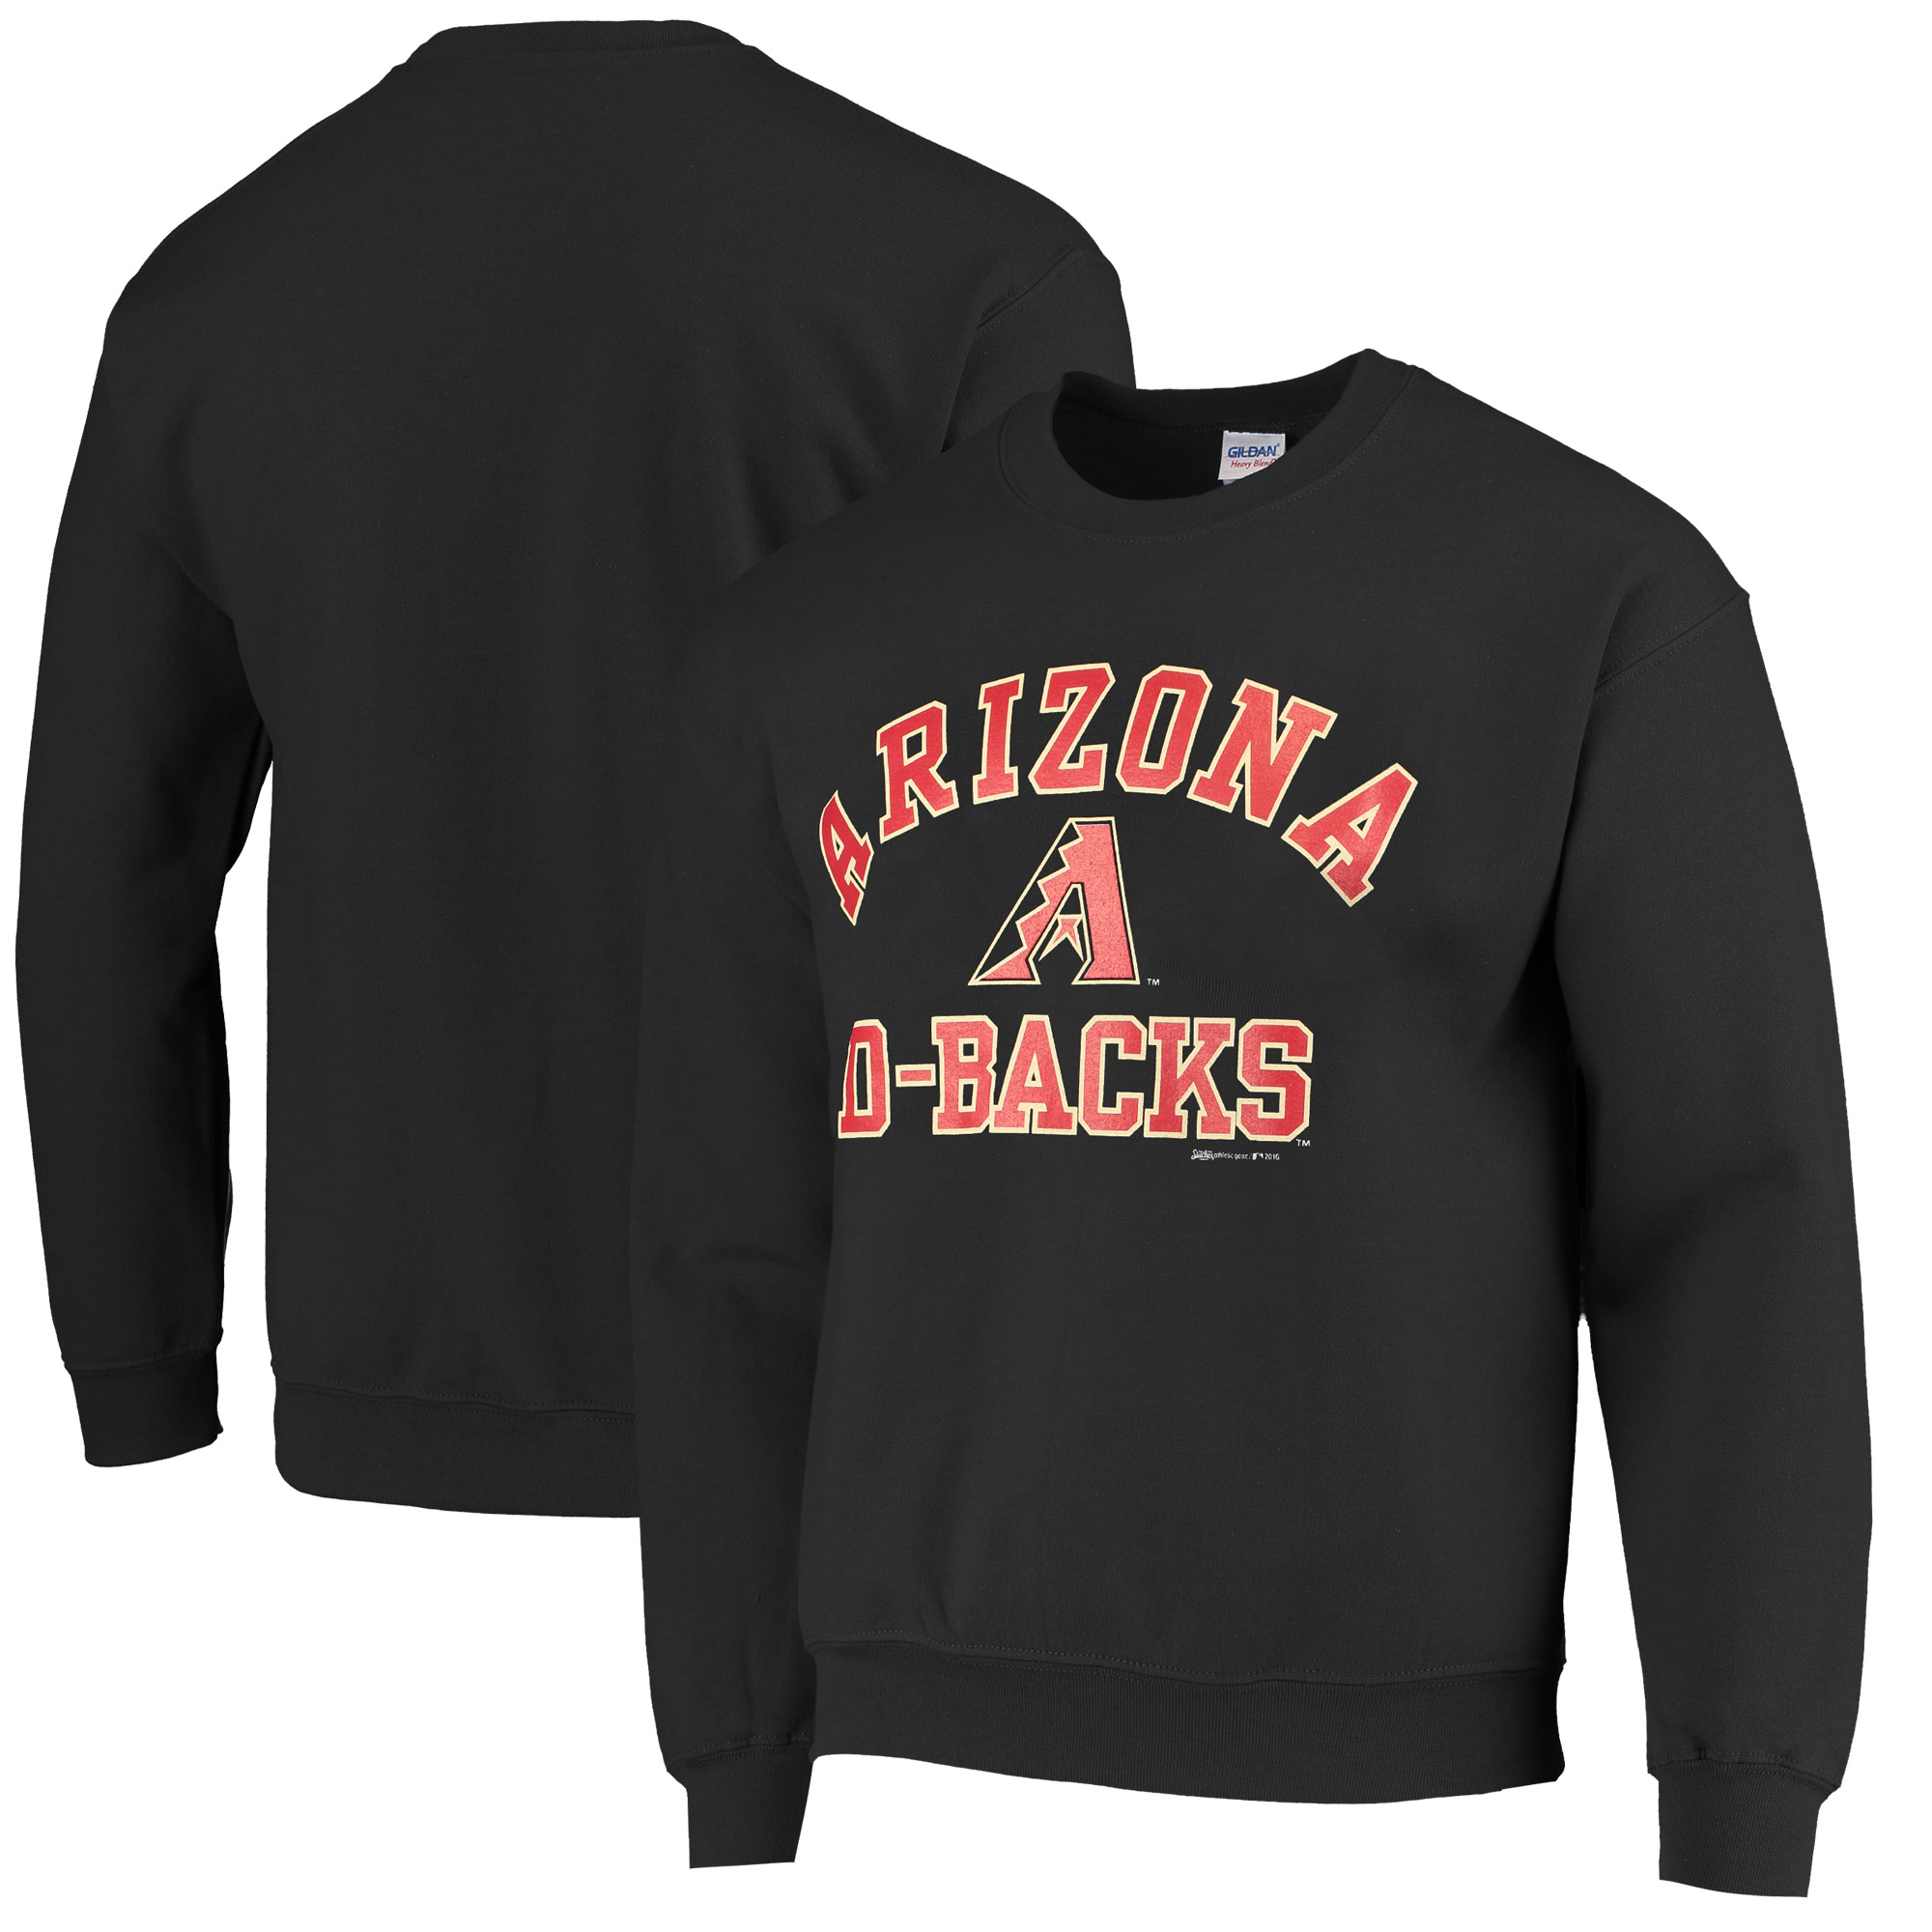 Arizona Diamondbacks Stitches Pullover Sweatshirt - Black